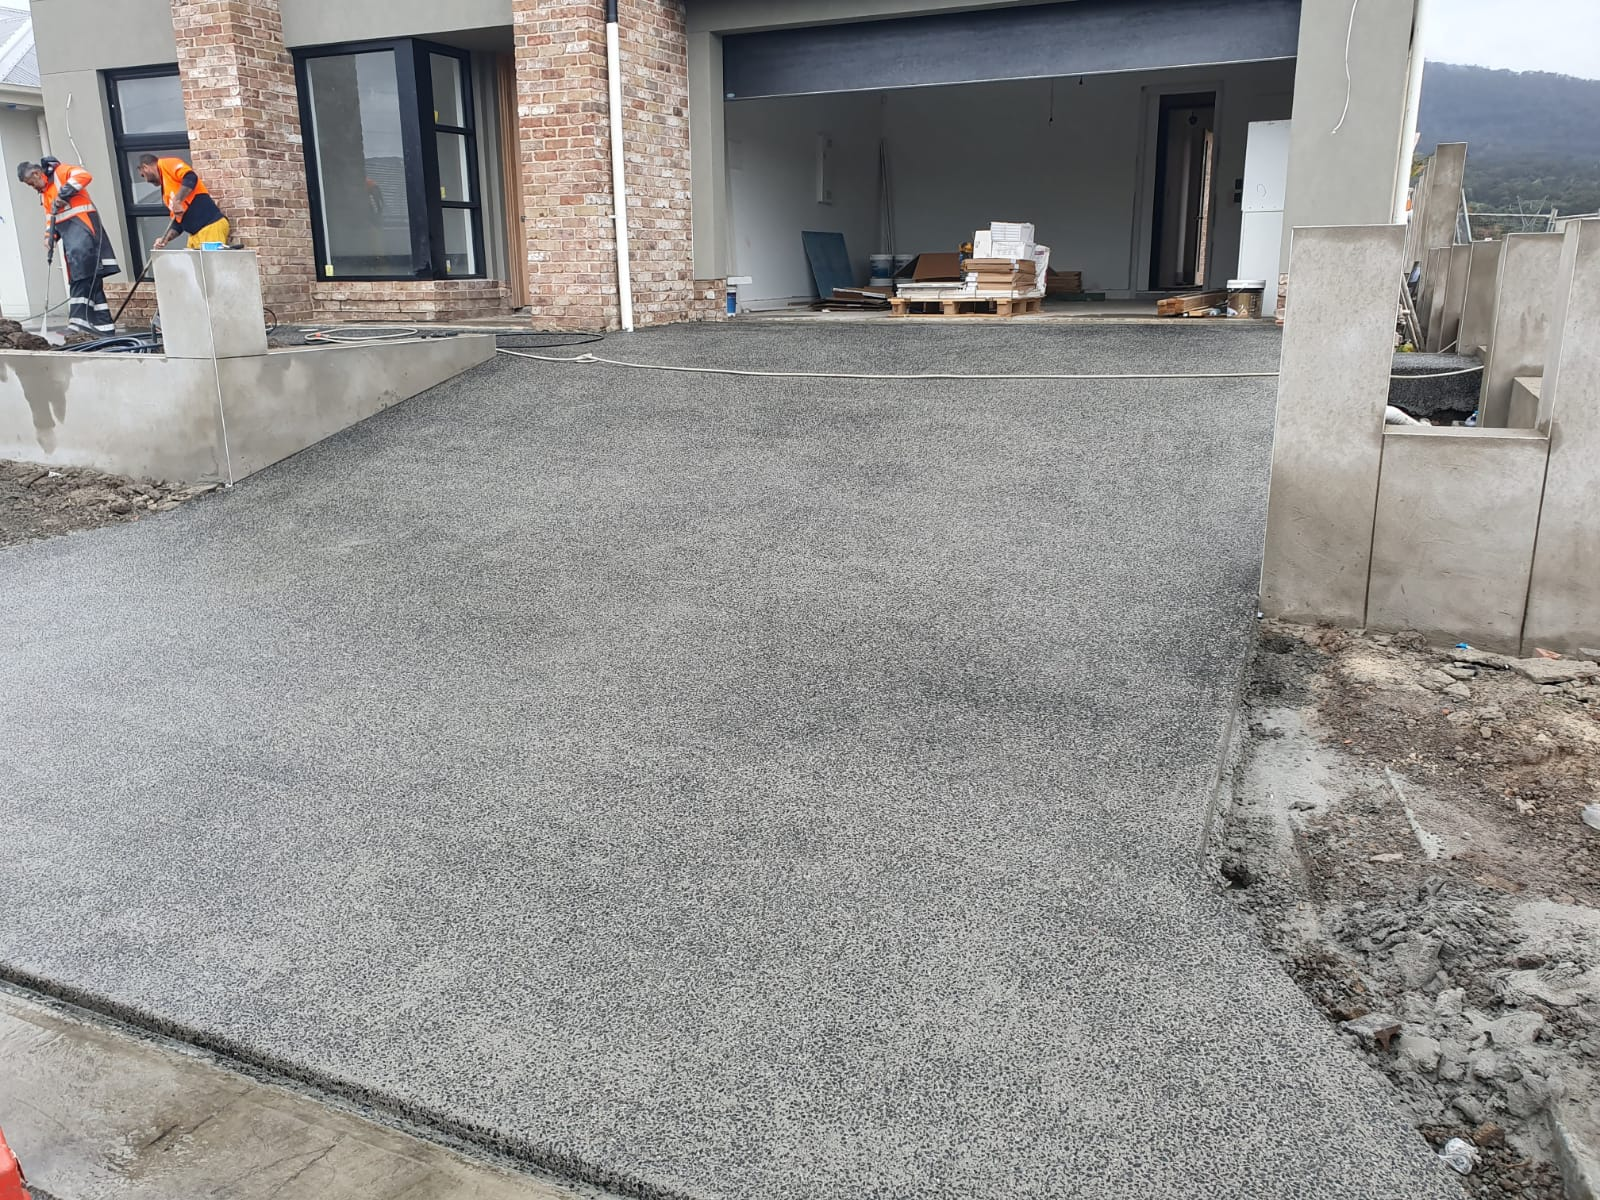 Example of exposed aggregate concreted driveway